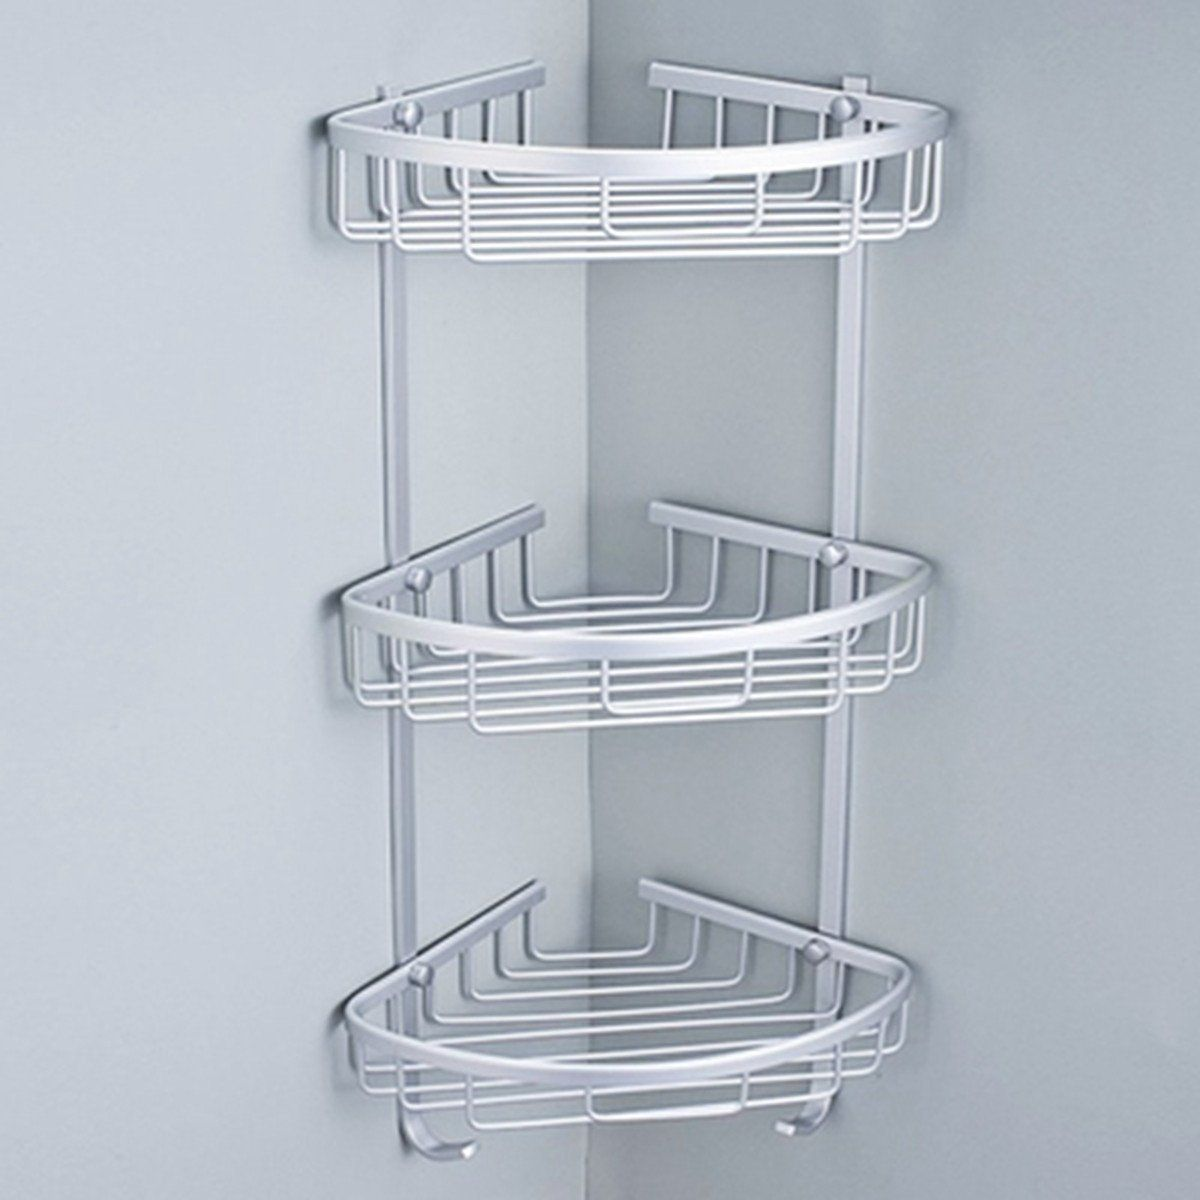 KING DO WAY Shower Bathroom Corner Shelf Storage Organizer Holder ...